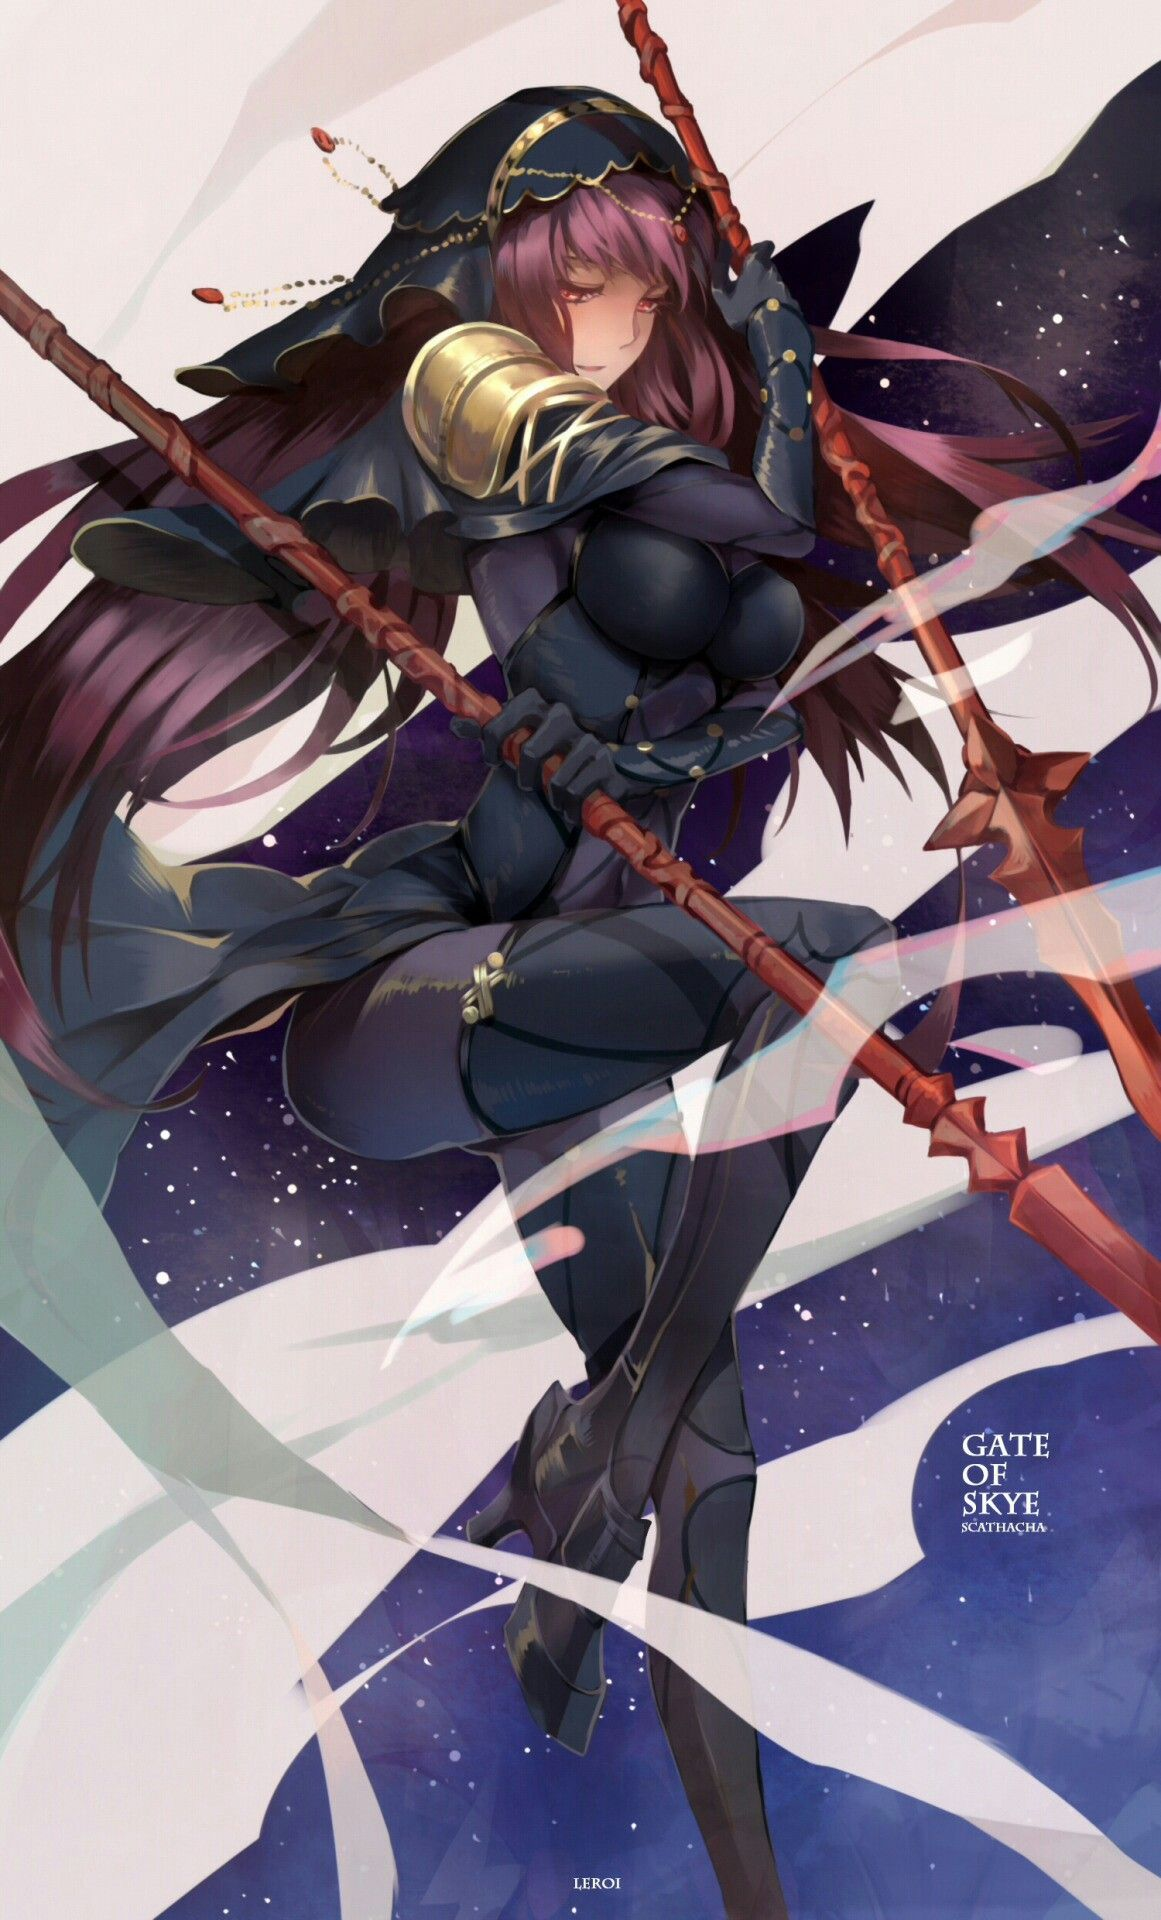 Fgo Lancer Scathach Scathach Fate Anime Fate Grand Order Lancer